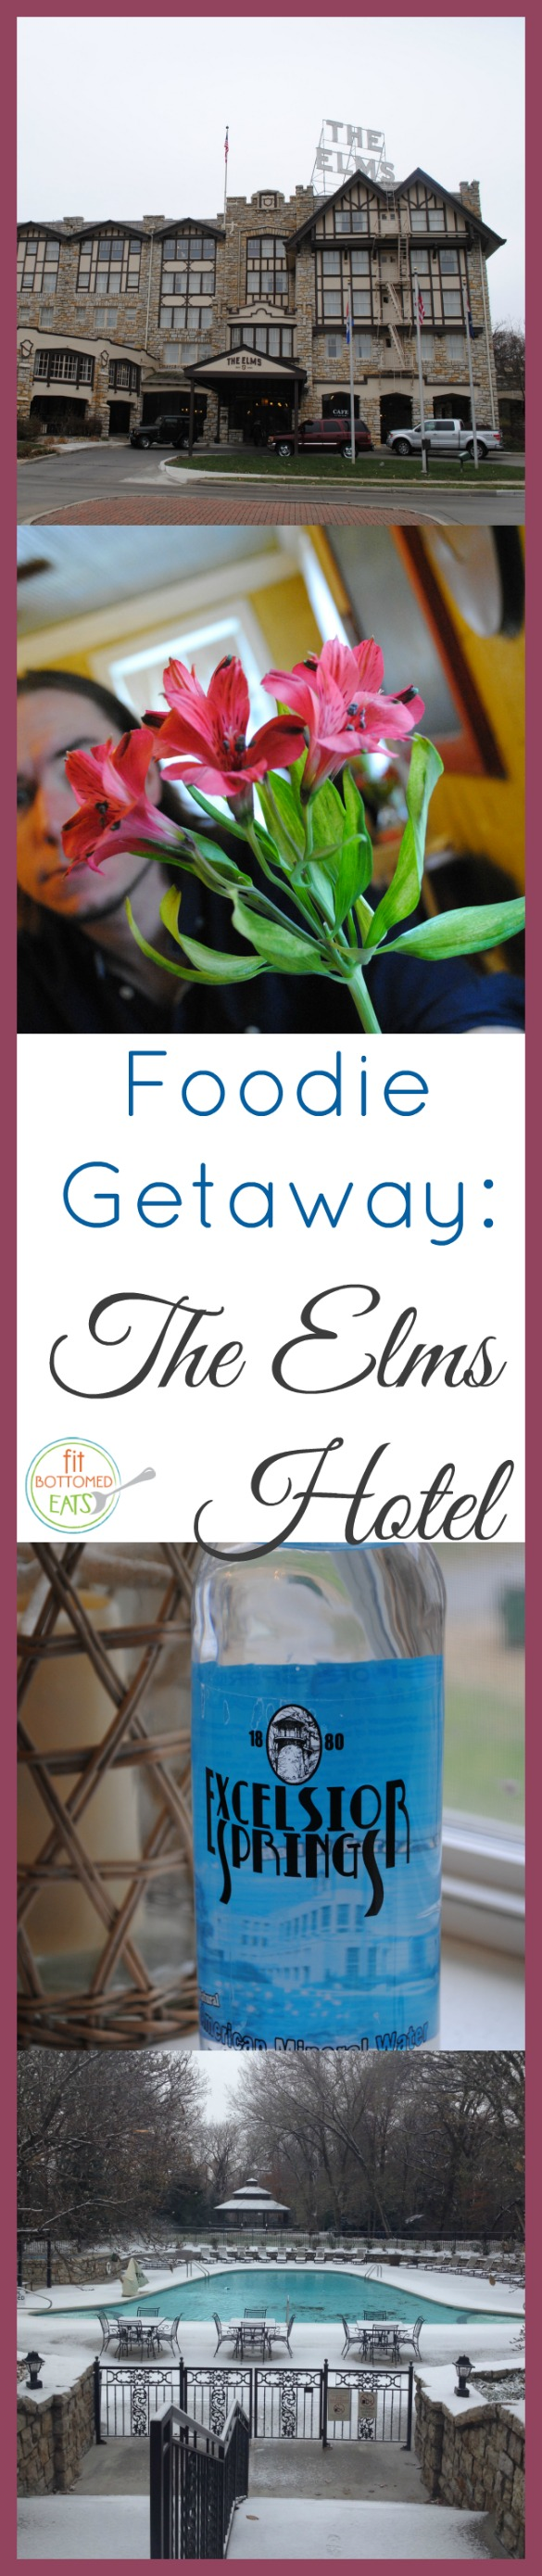 the-elms-hotel